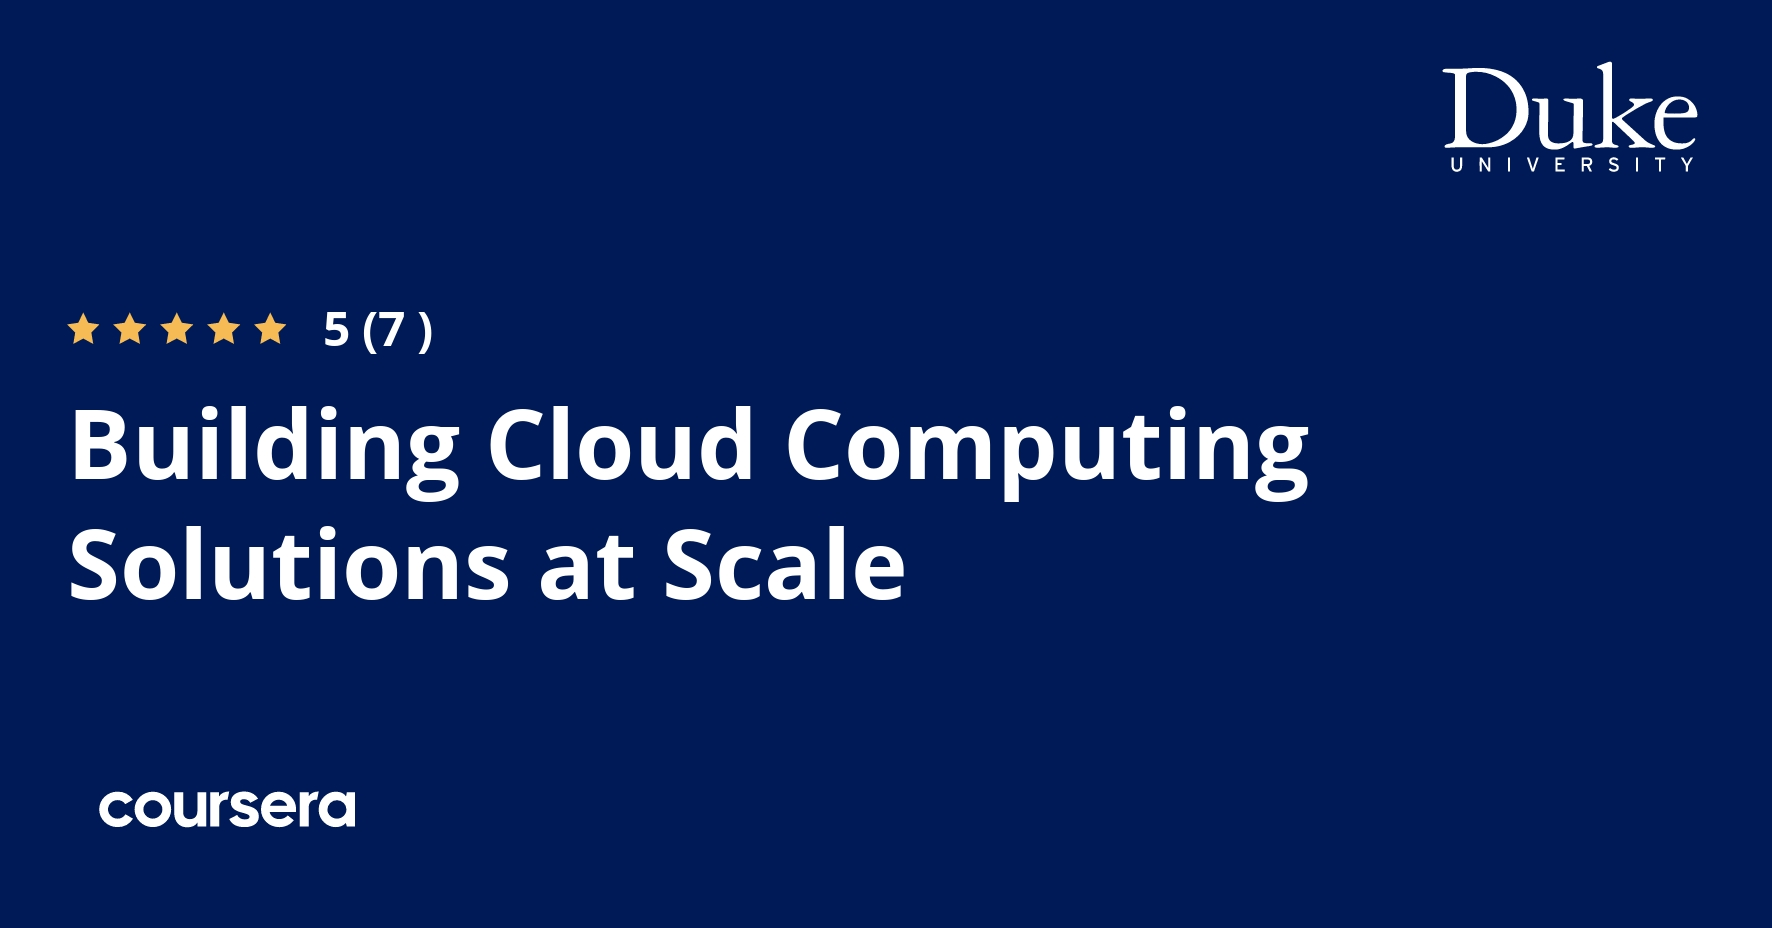 Building Cloud Computing Solutions at Scale Specialization